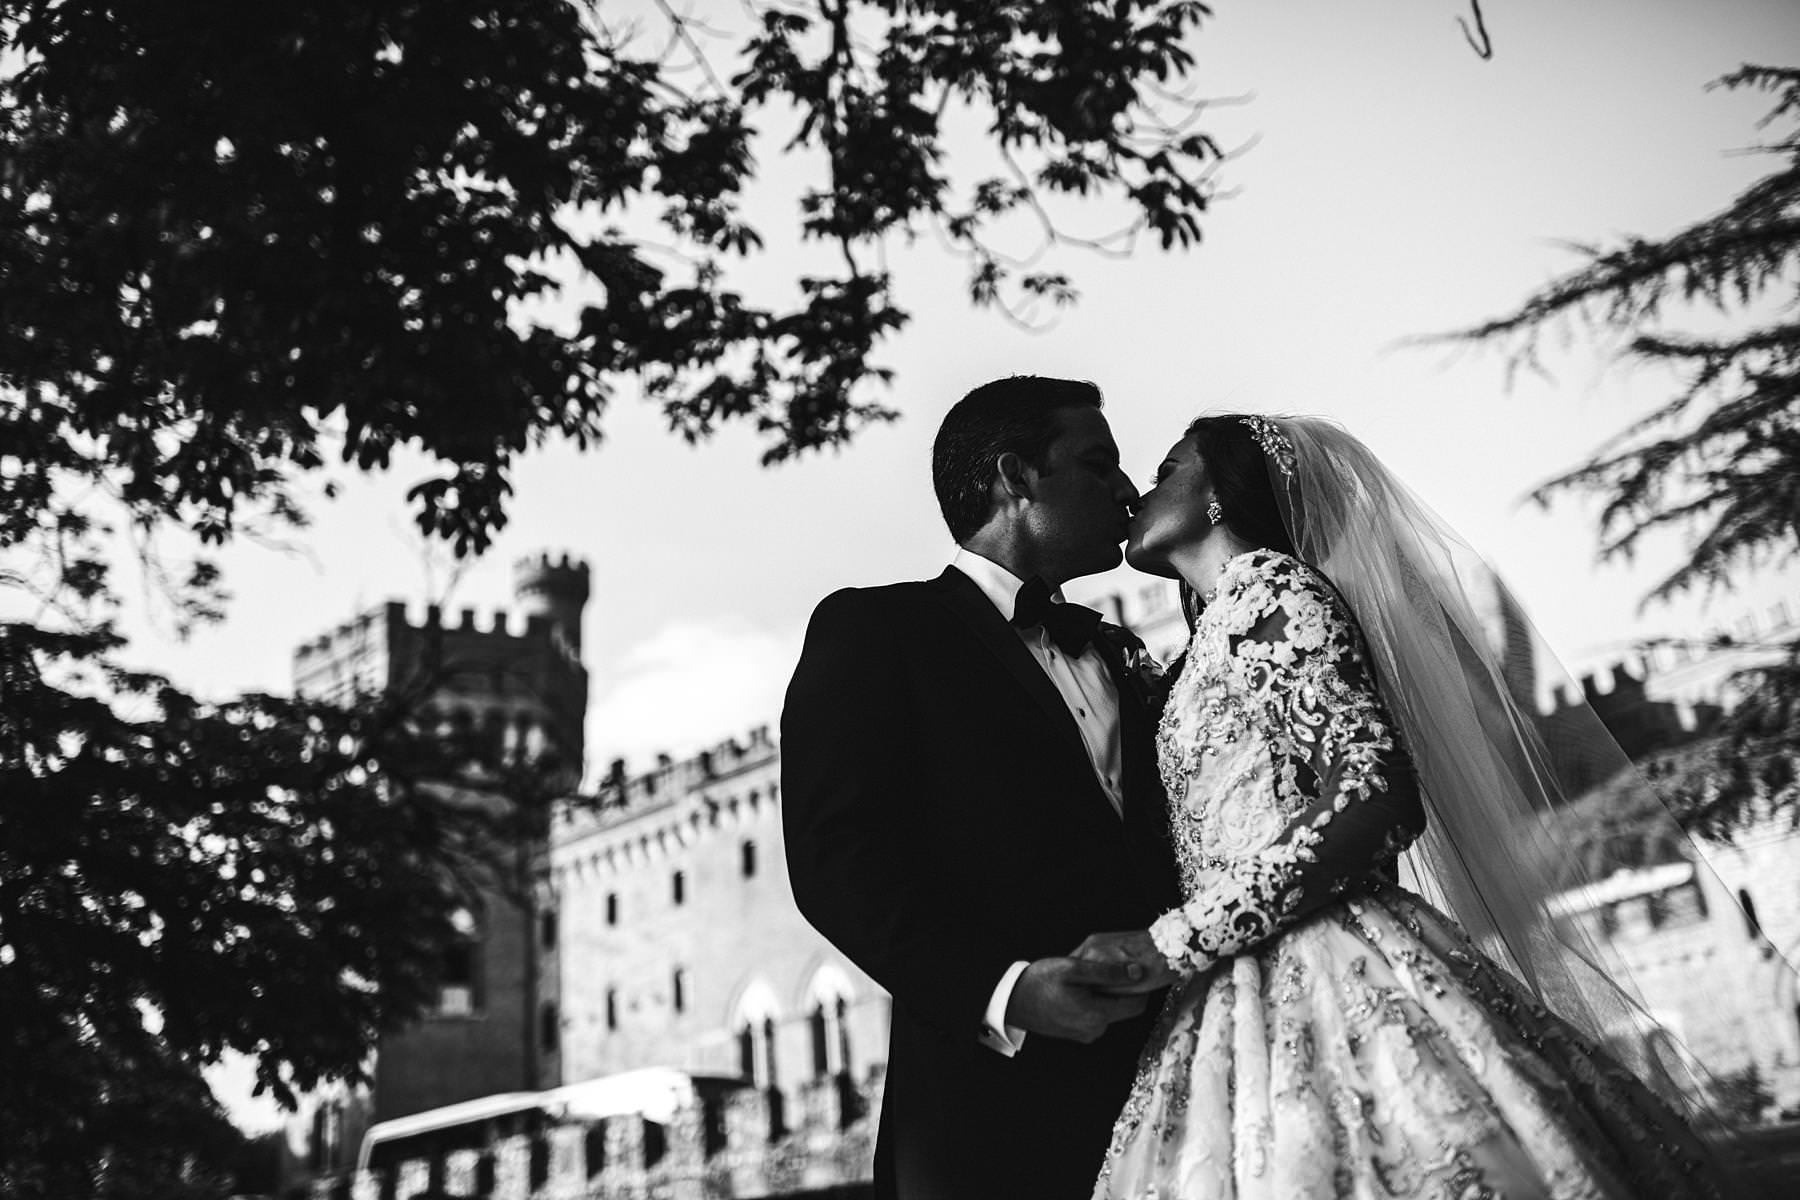 Bride and groom portrait at Valenzano Castle in Tuscany near Arezzo